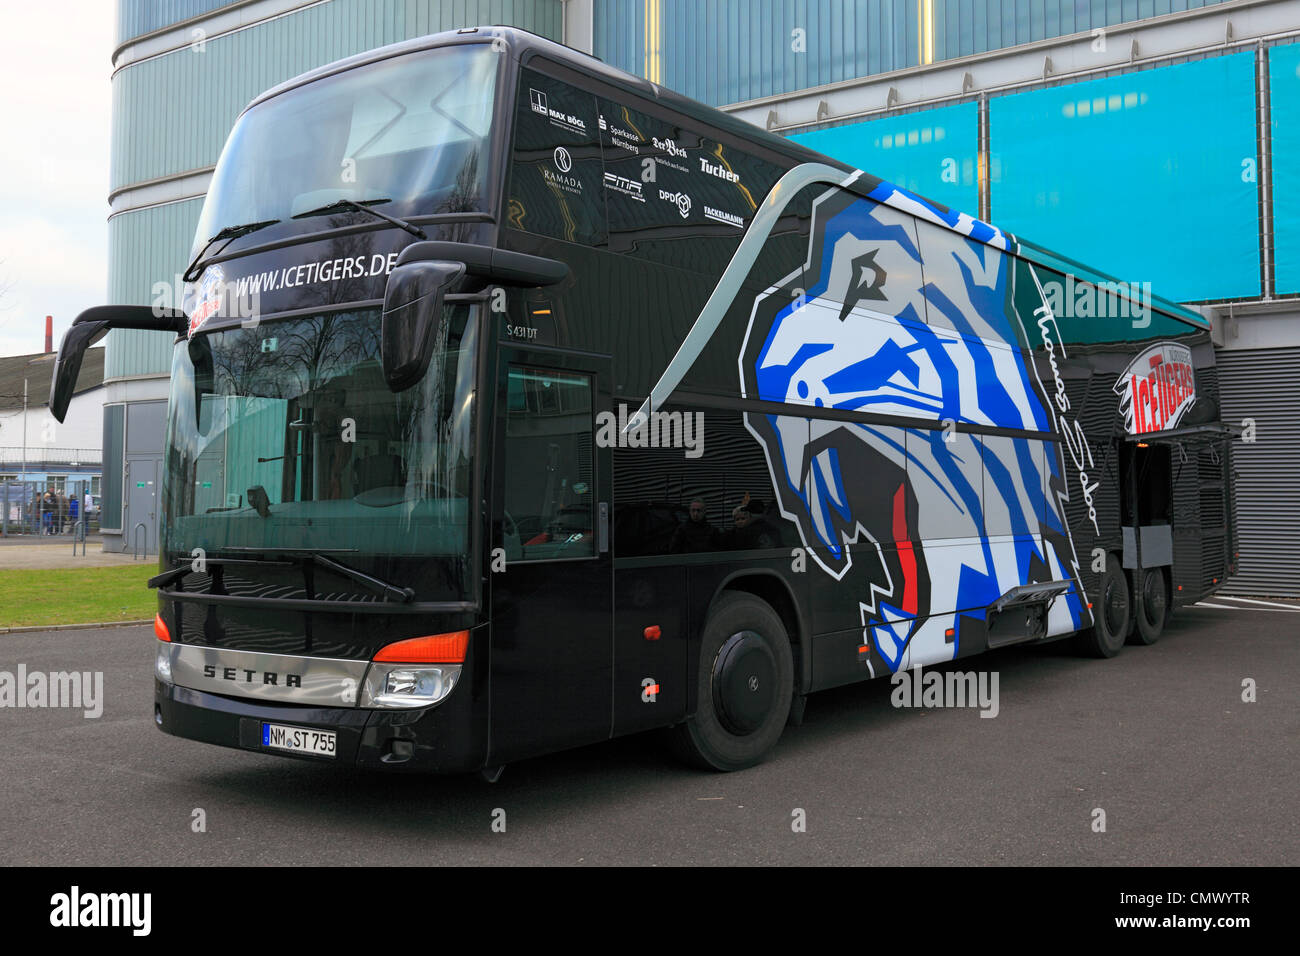 team bus of nuremberg sports ice hockey deutsche eishockey liga stock photo 47284519 alamy. Black Bedroom Furniture Sets. Home Design Ideas